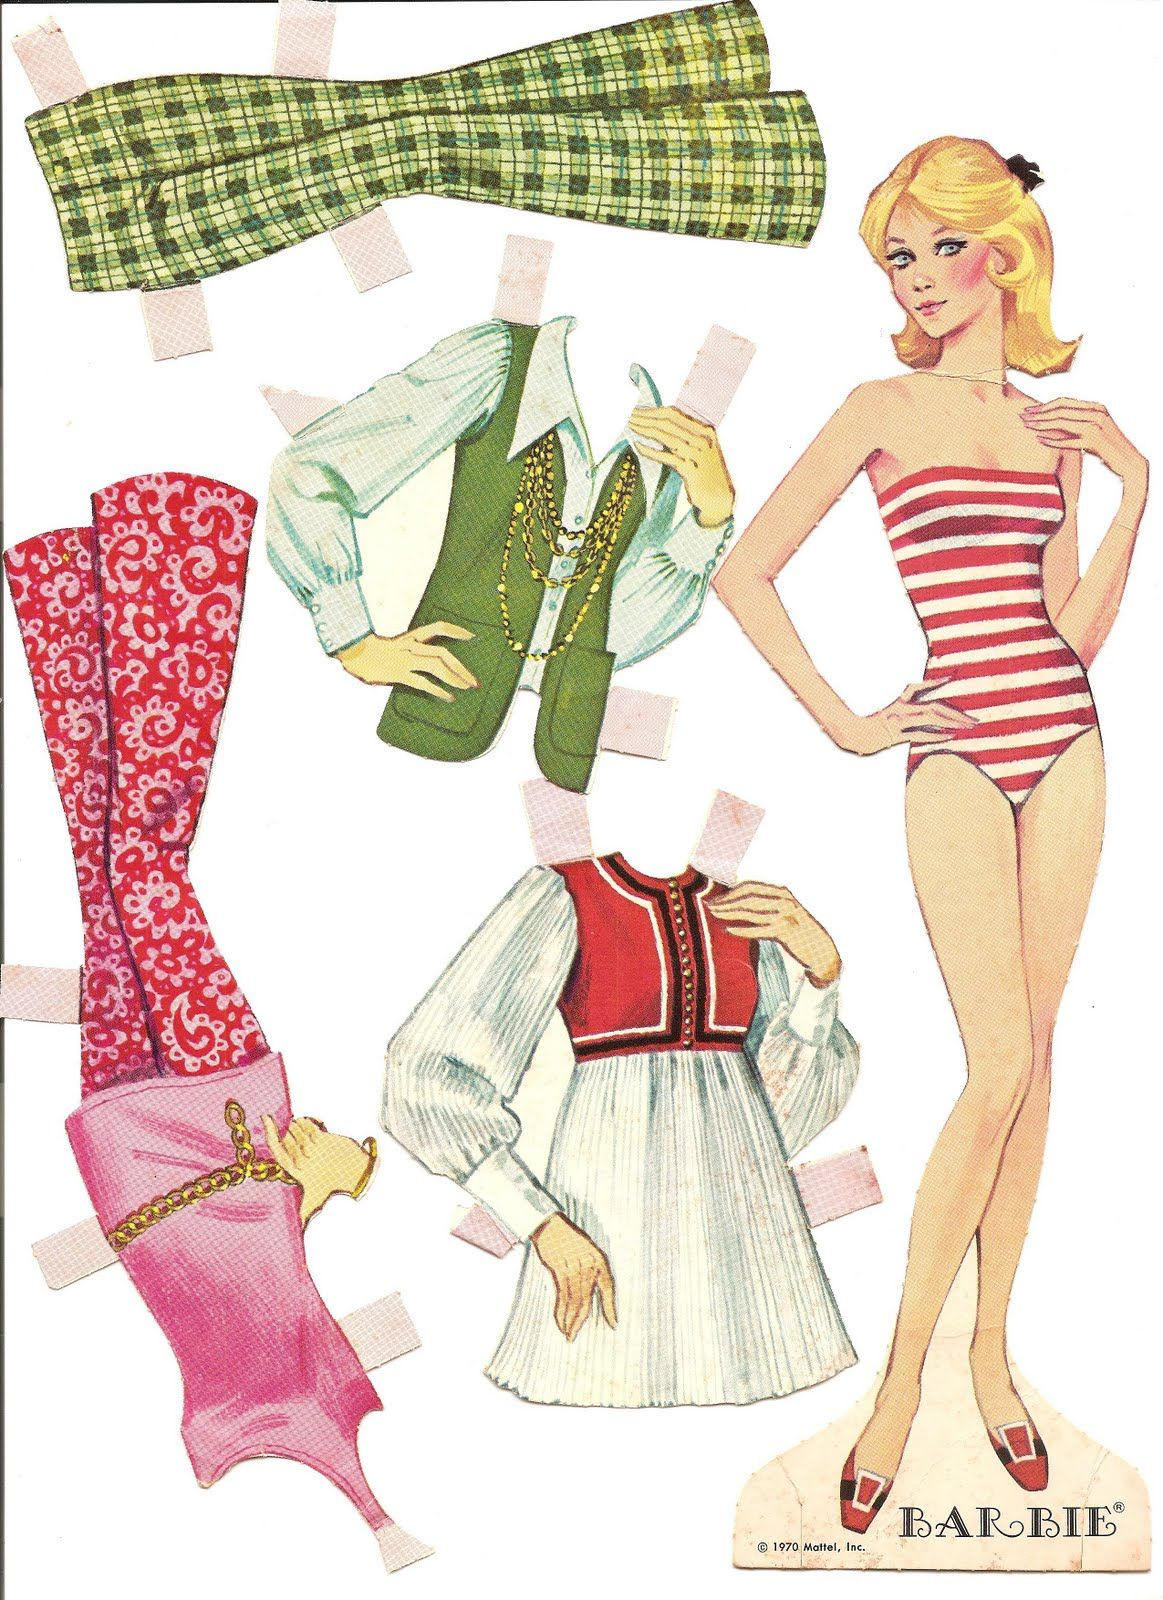 image relating to Printable Barbie Paper Dolls titled No cost Printable Barbie Paper Dolls My BARBIE Paper Dolls